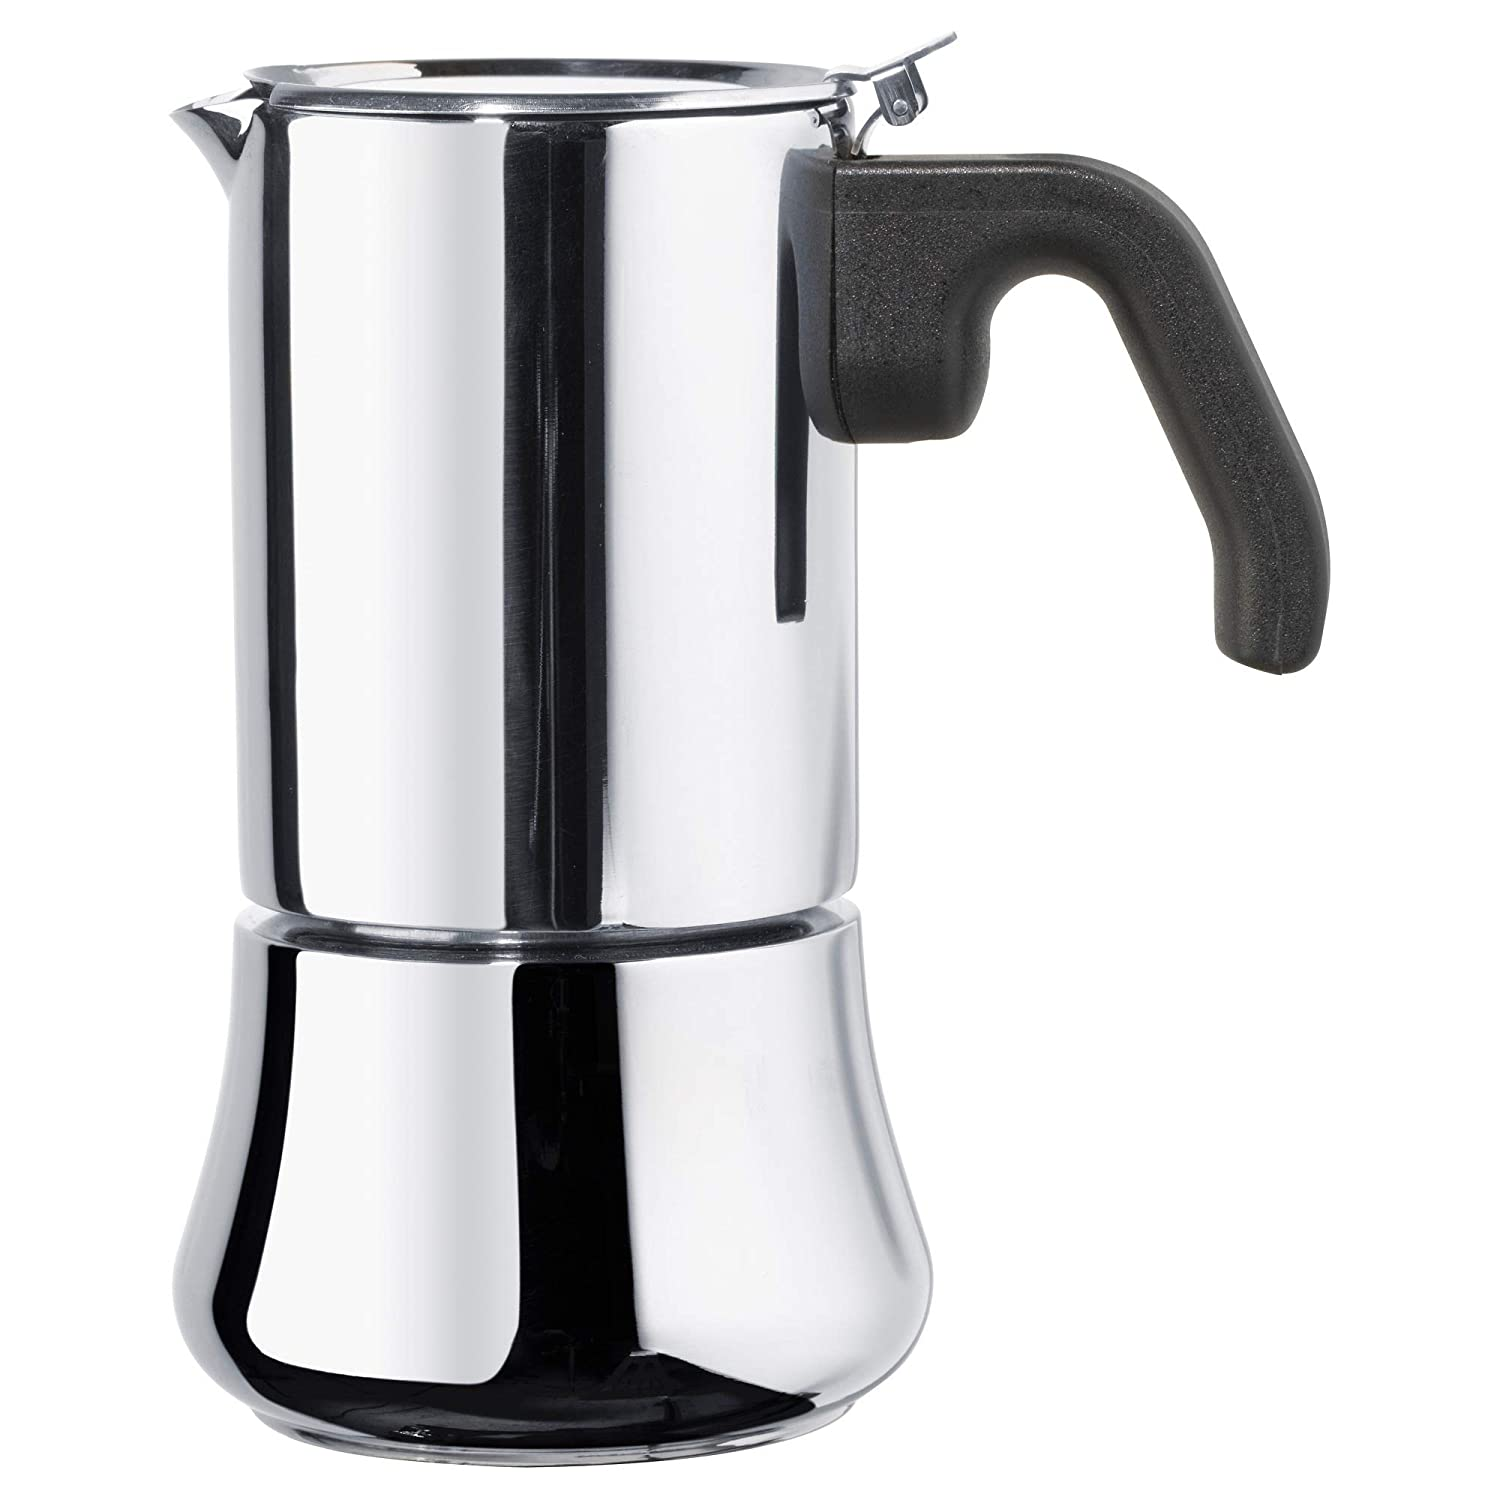 IKEA - RÃ...DIG Espresso pot for 6 cups, stainless steel: Amazon ...